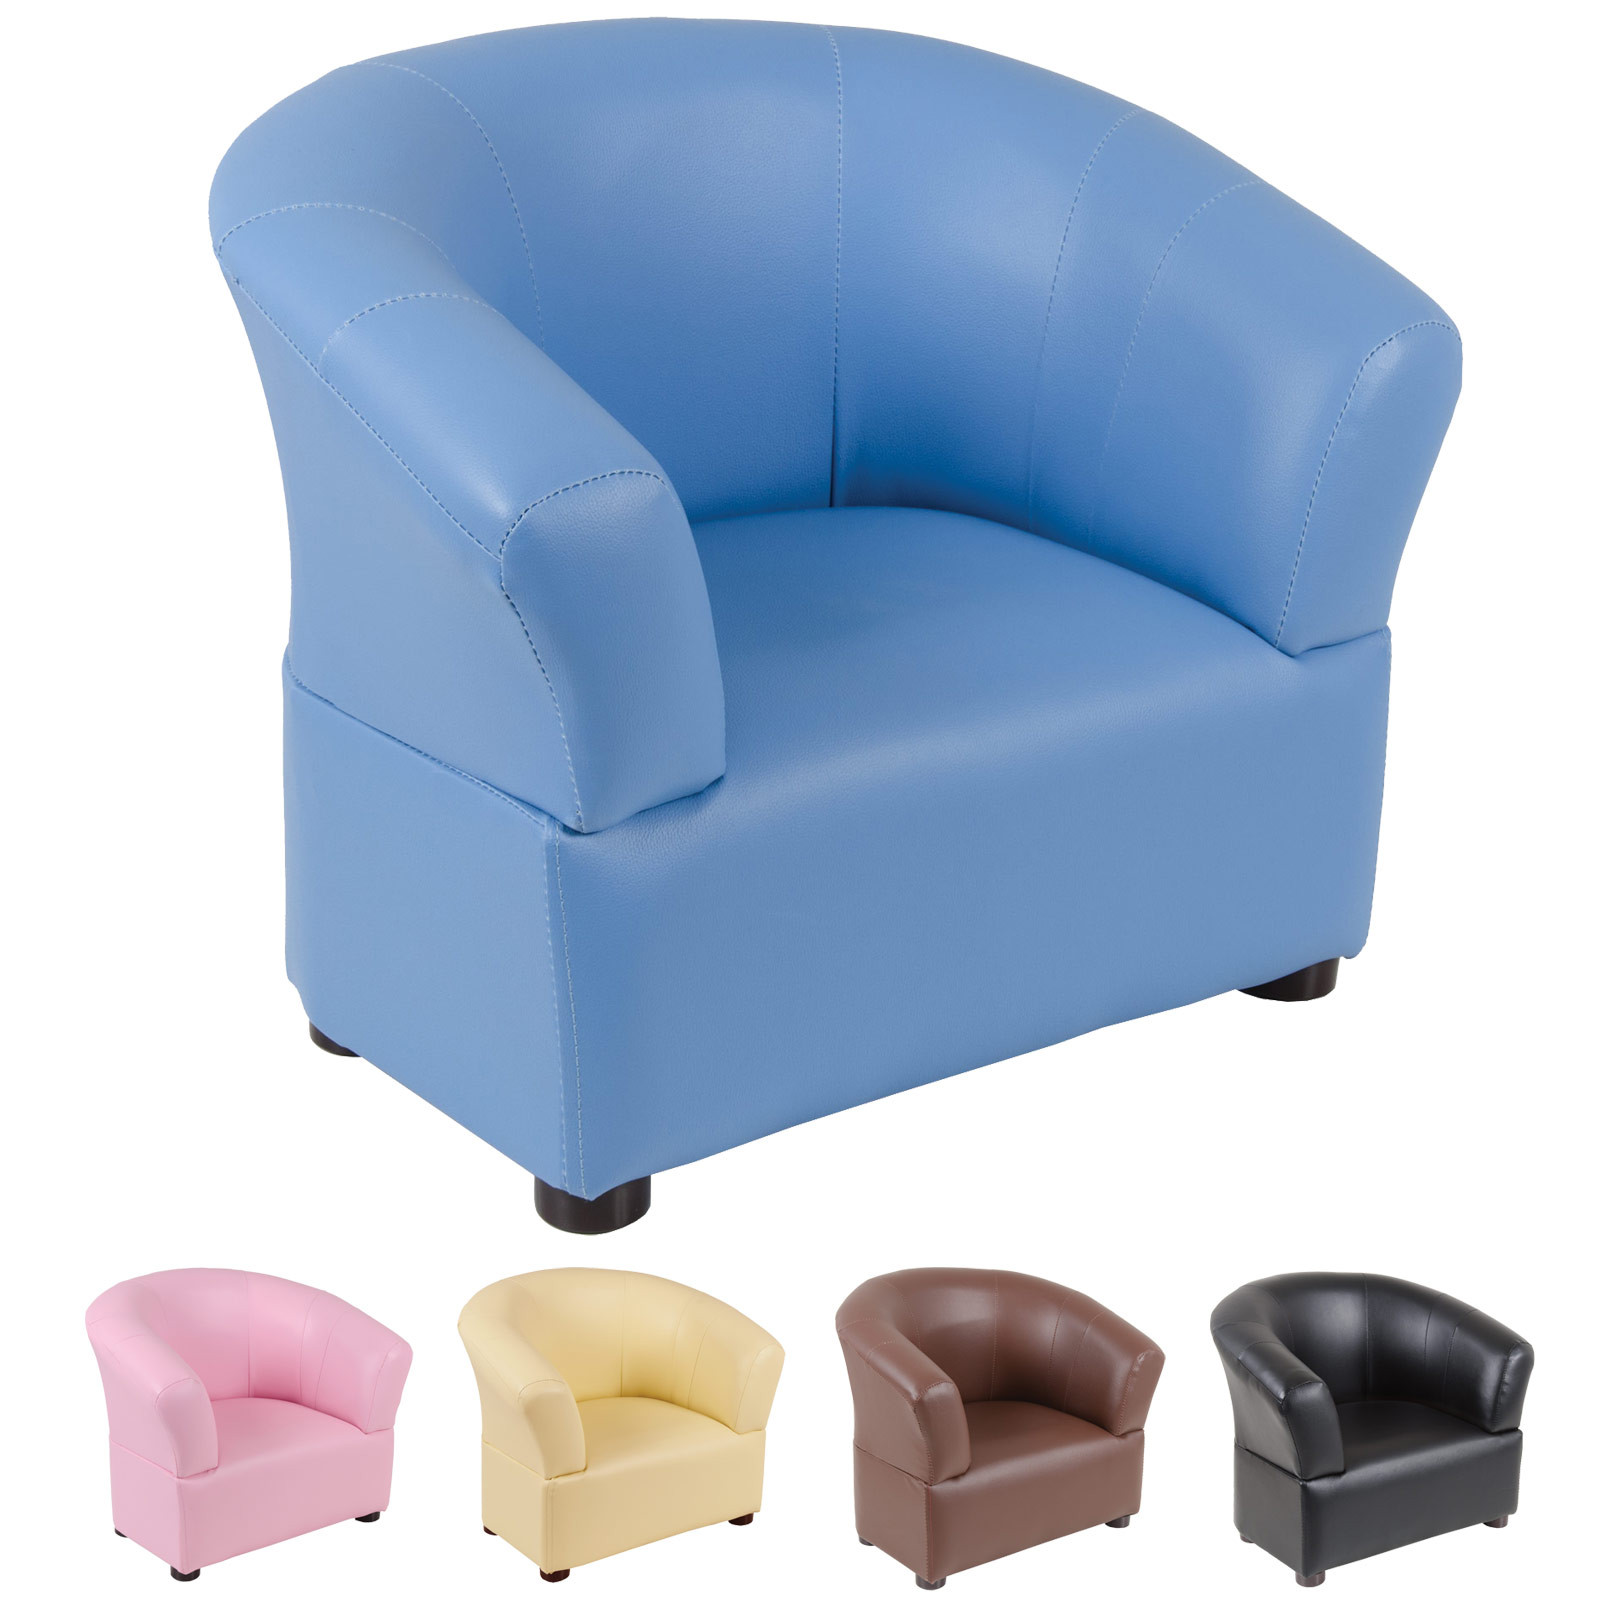 Kids Comfy Chair  Kids fy PVC Leather Look Tub Chair Armchair Seat